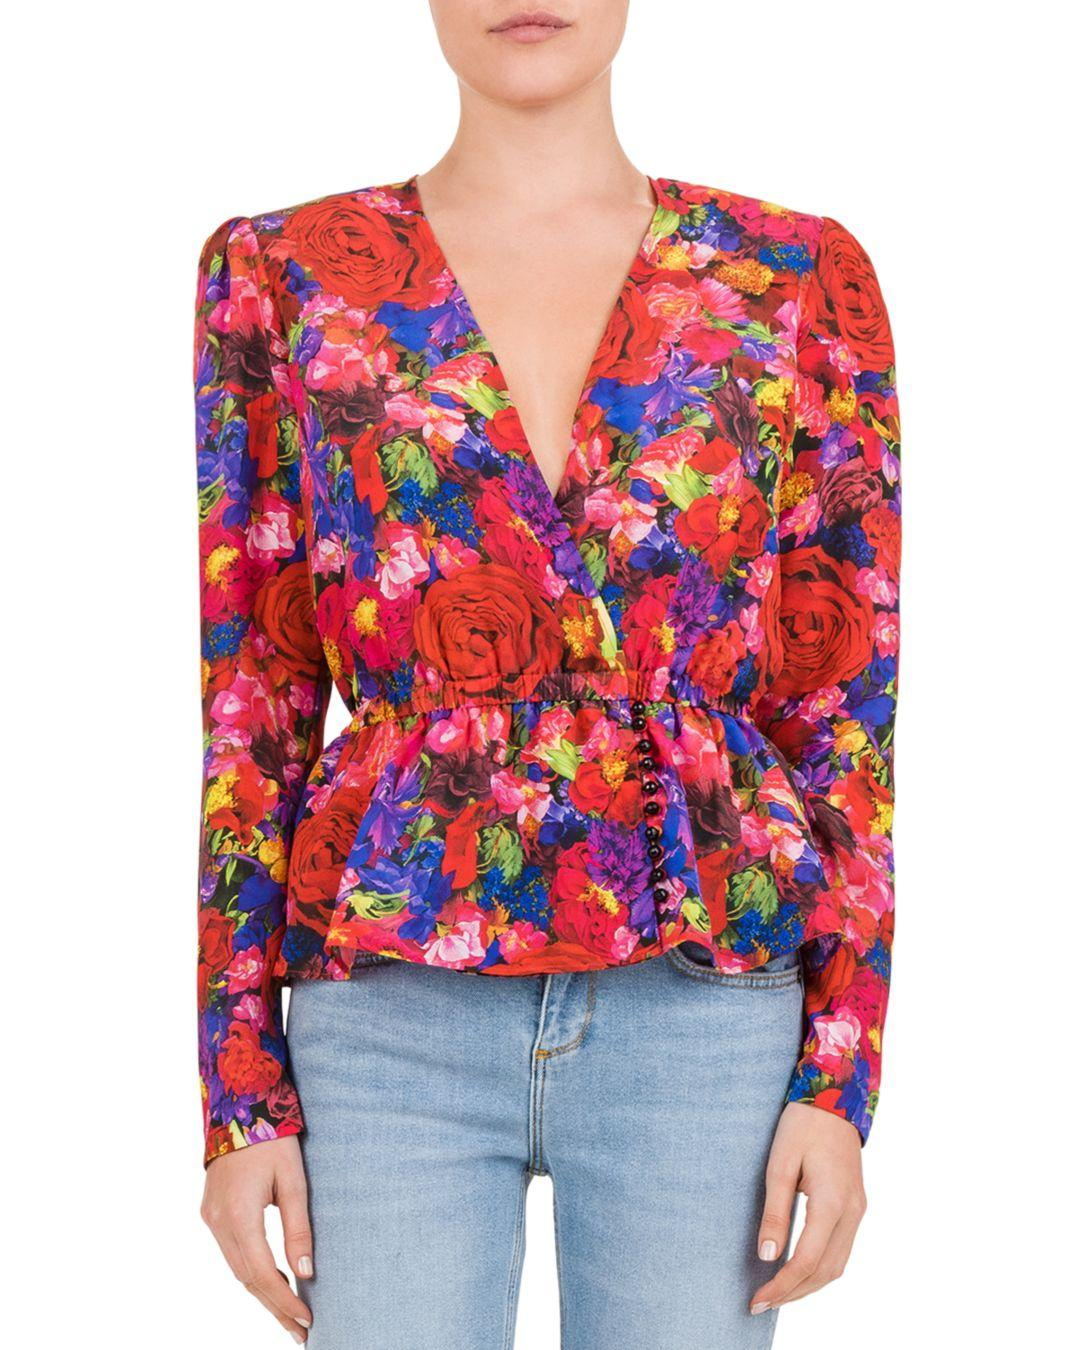 57a801226de381 The Kooples Summer Night Floral Silk Blouse in Red - Lyst